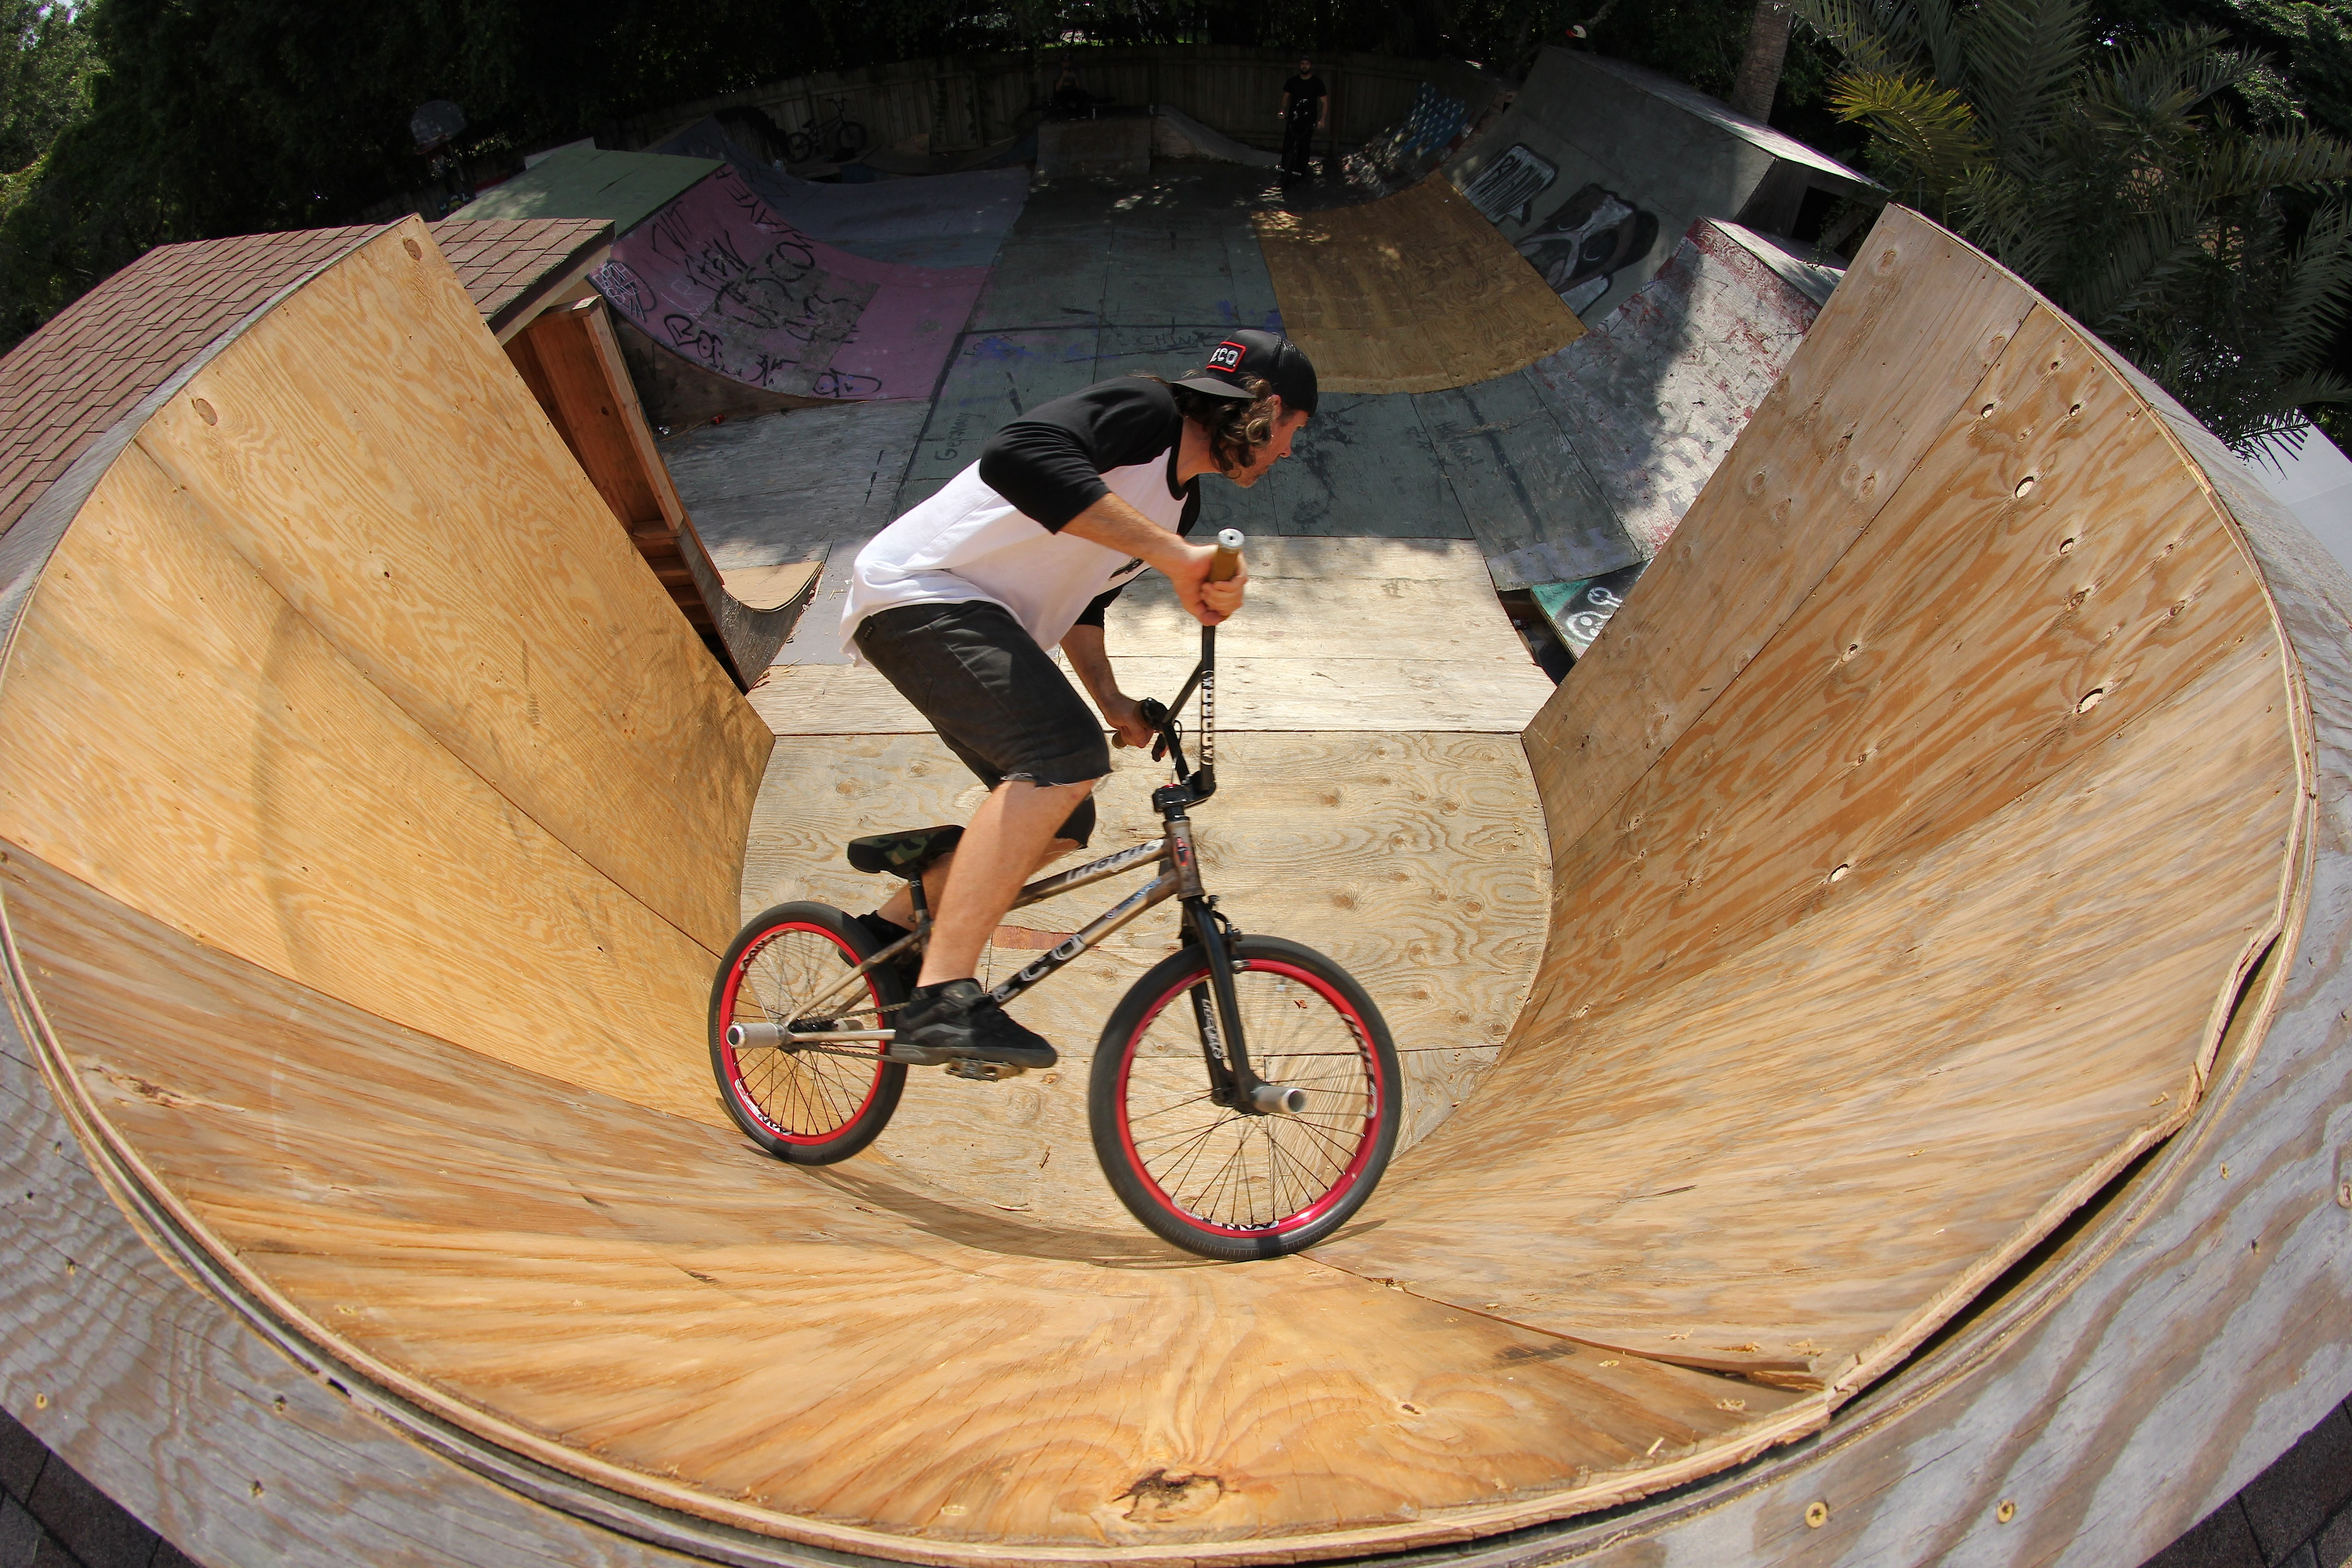 Chad Degroot: 180 wall carve at Trey Jones.